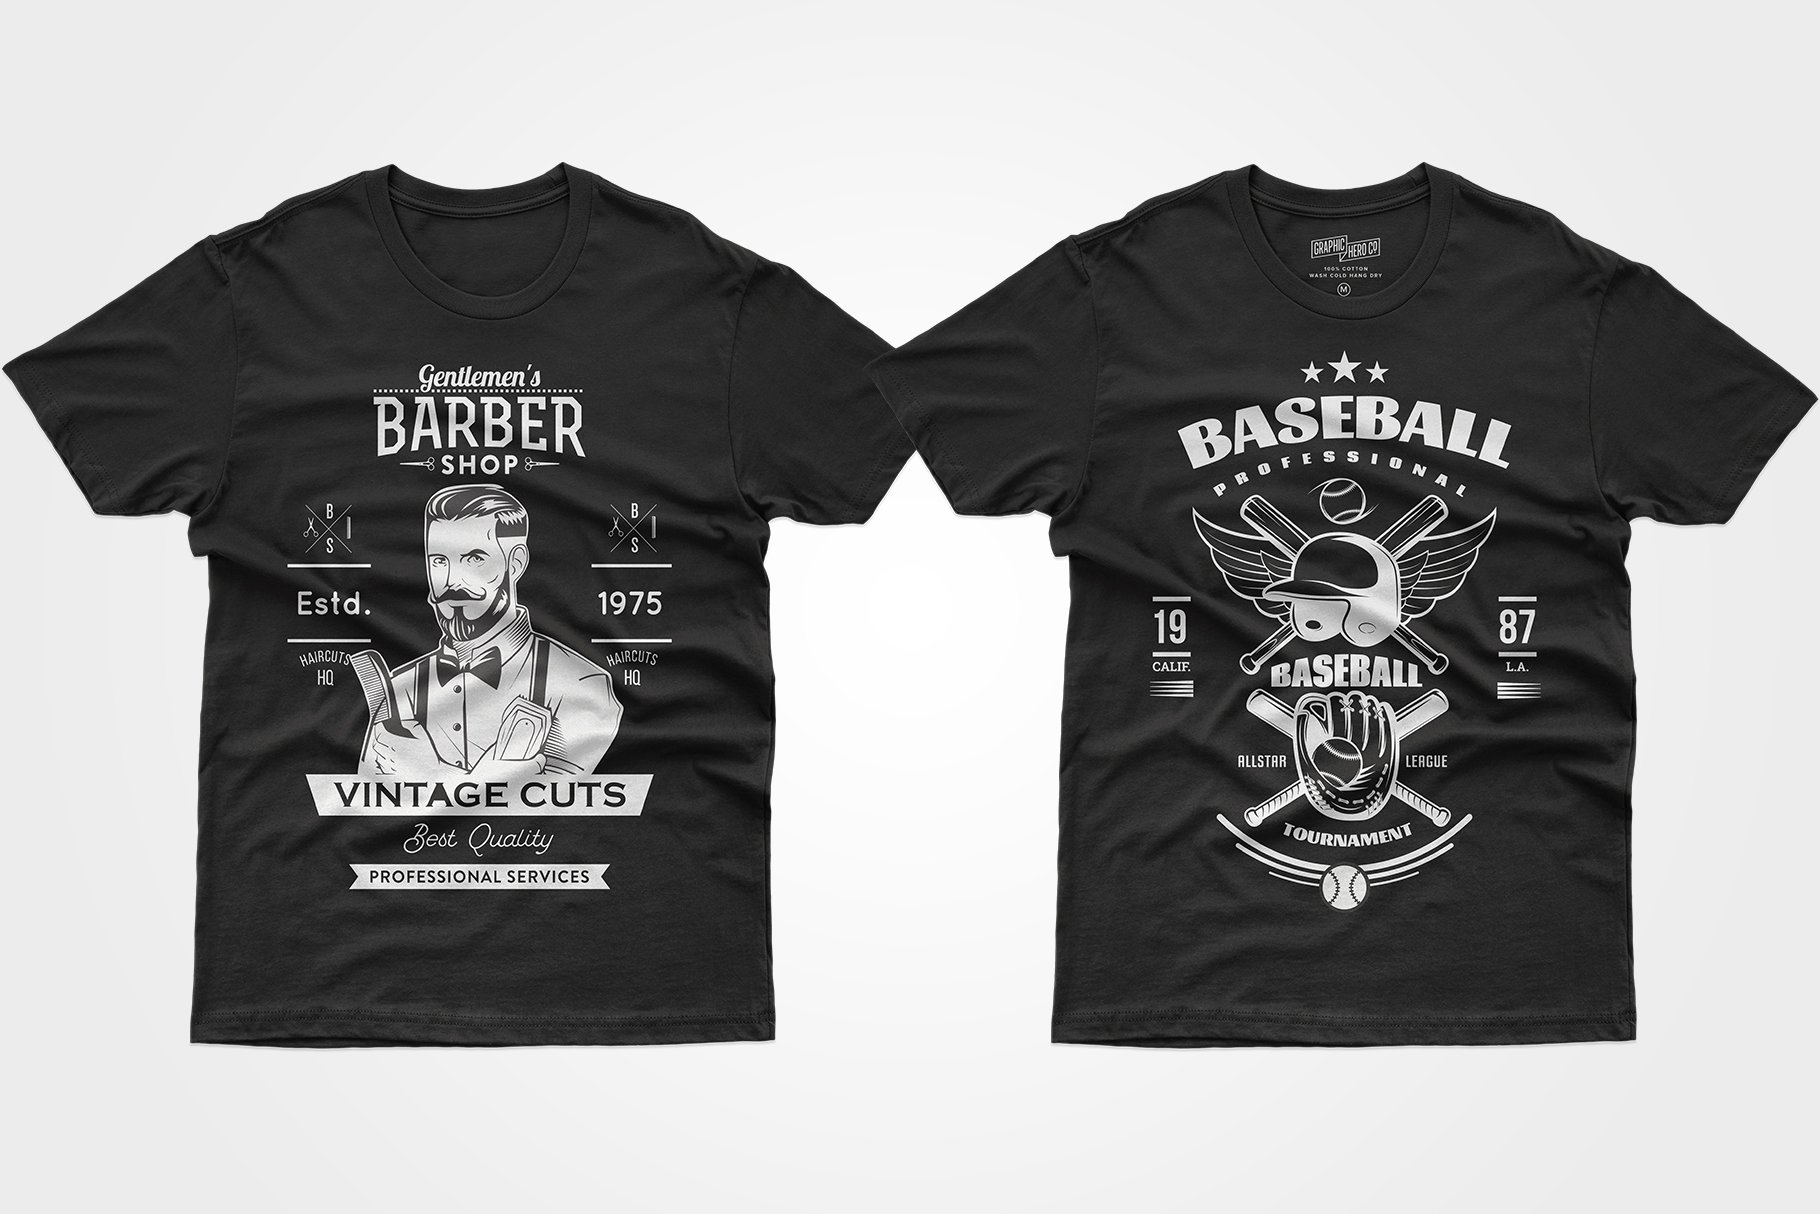 Two black T-shirts - with barbershop advertisements and baseball attributes.